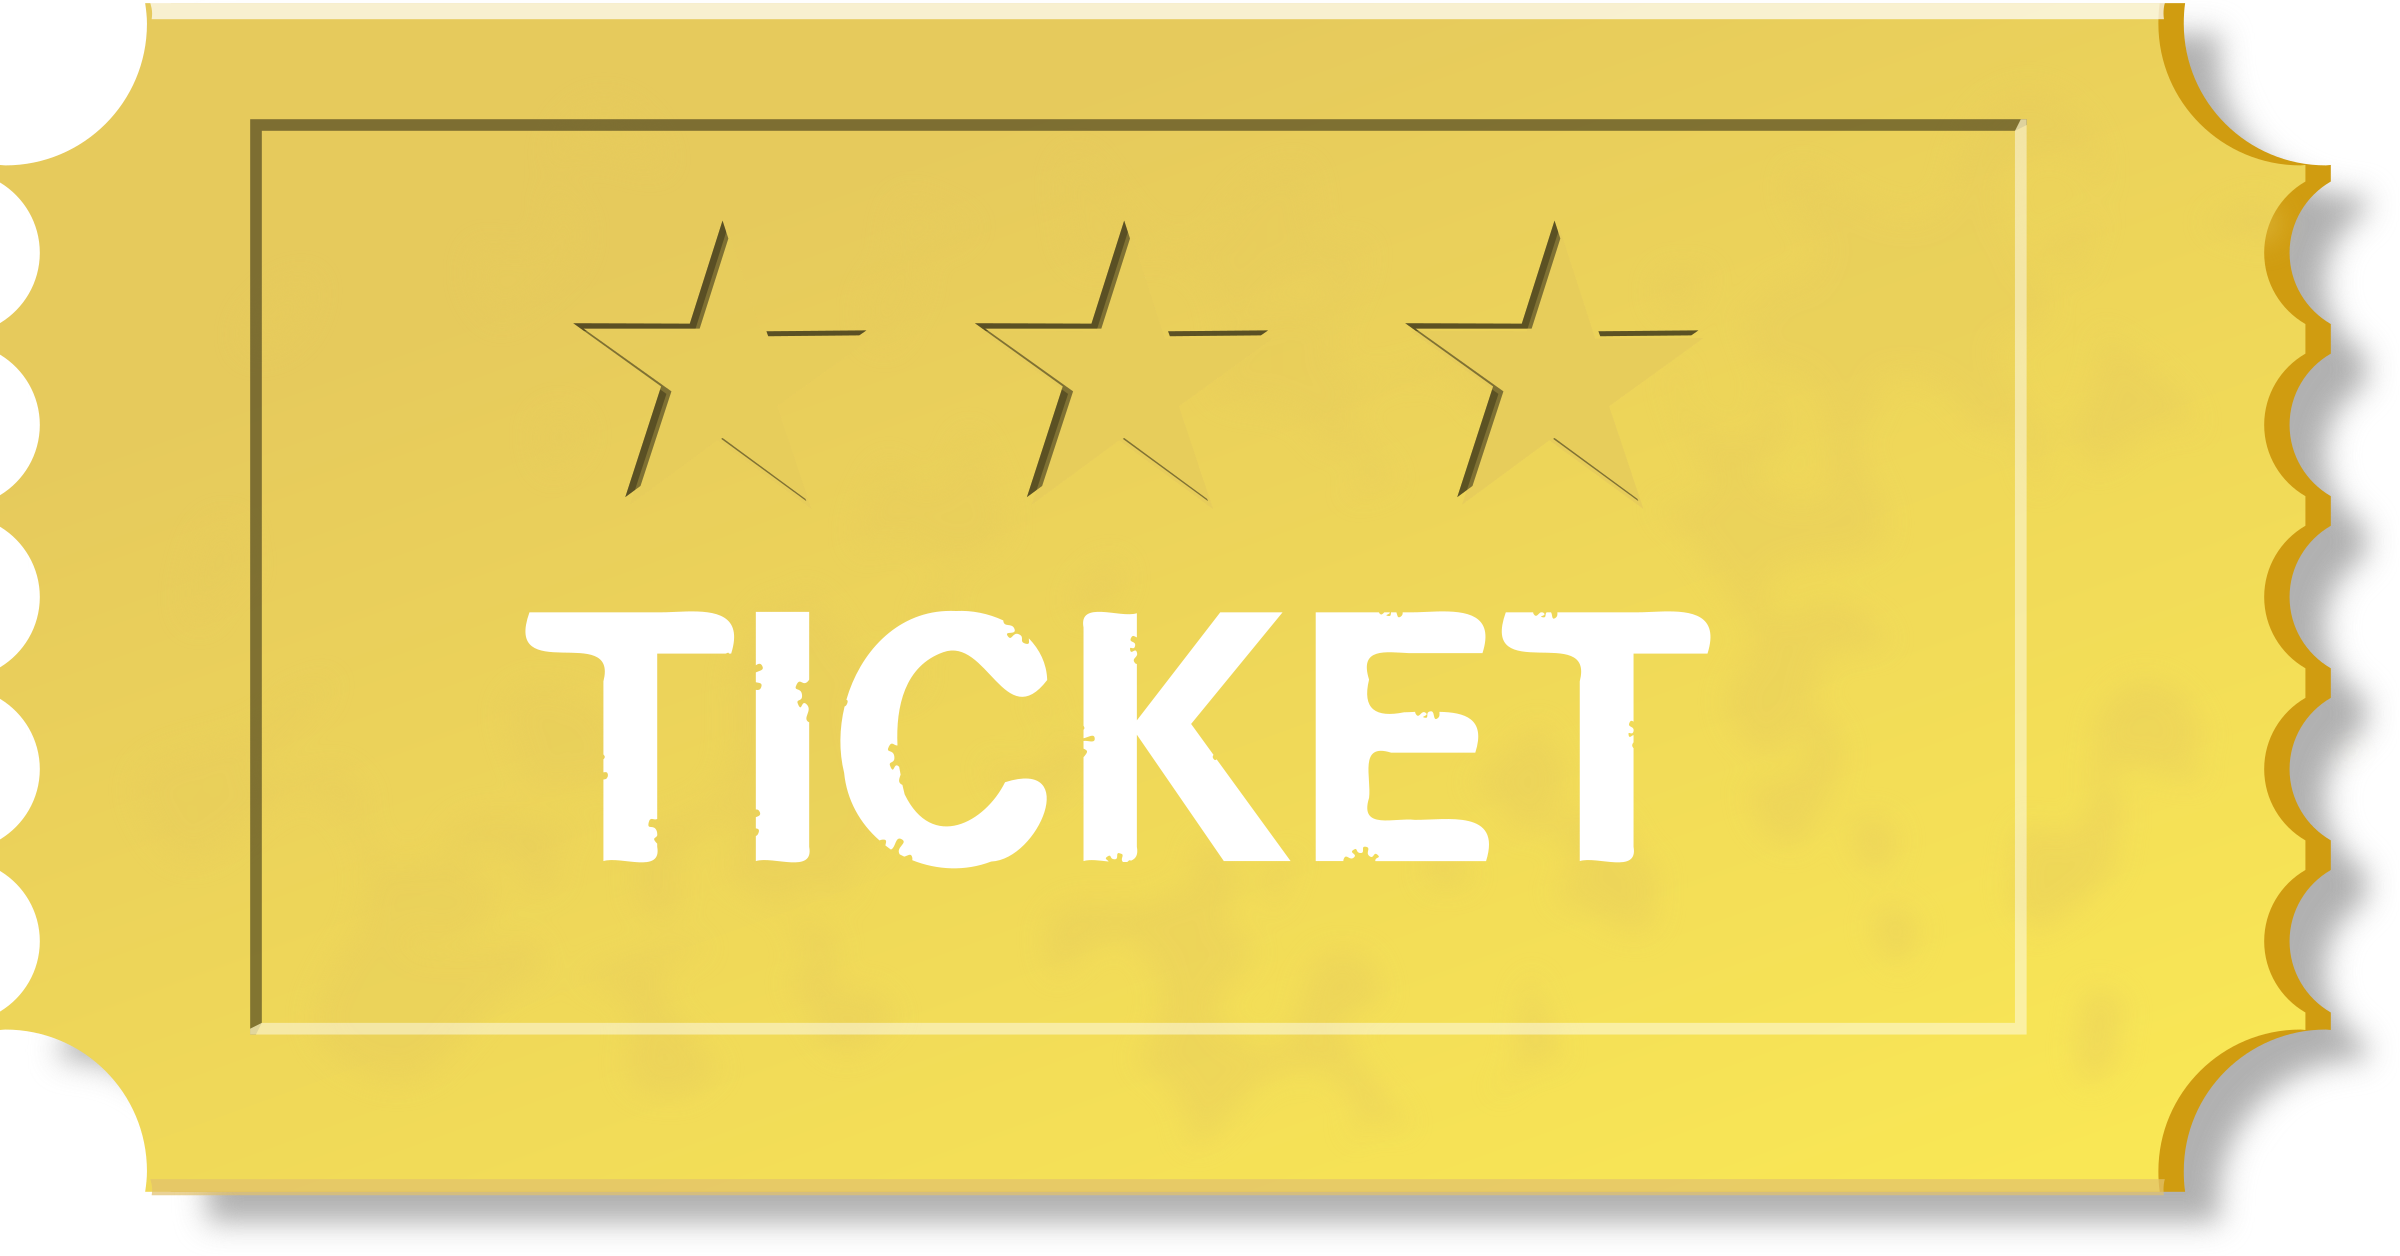 Ticket clipart yellow. Big image png